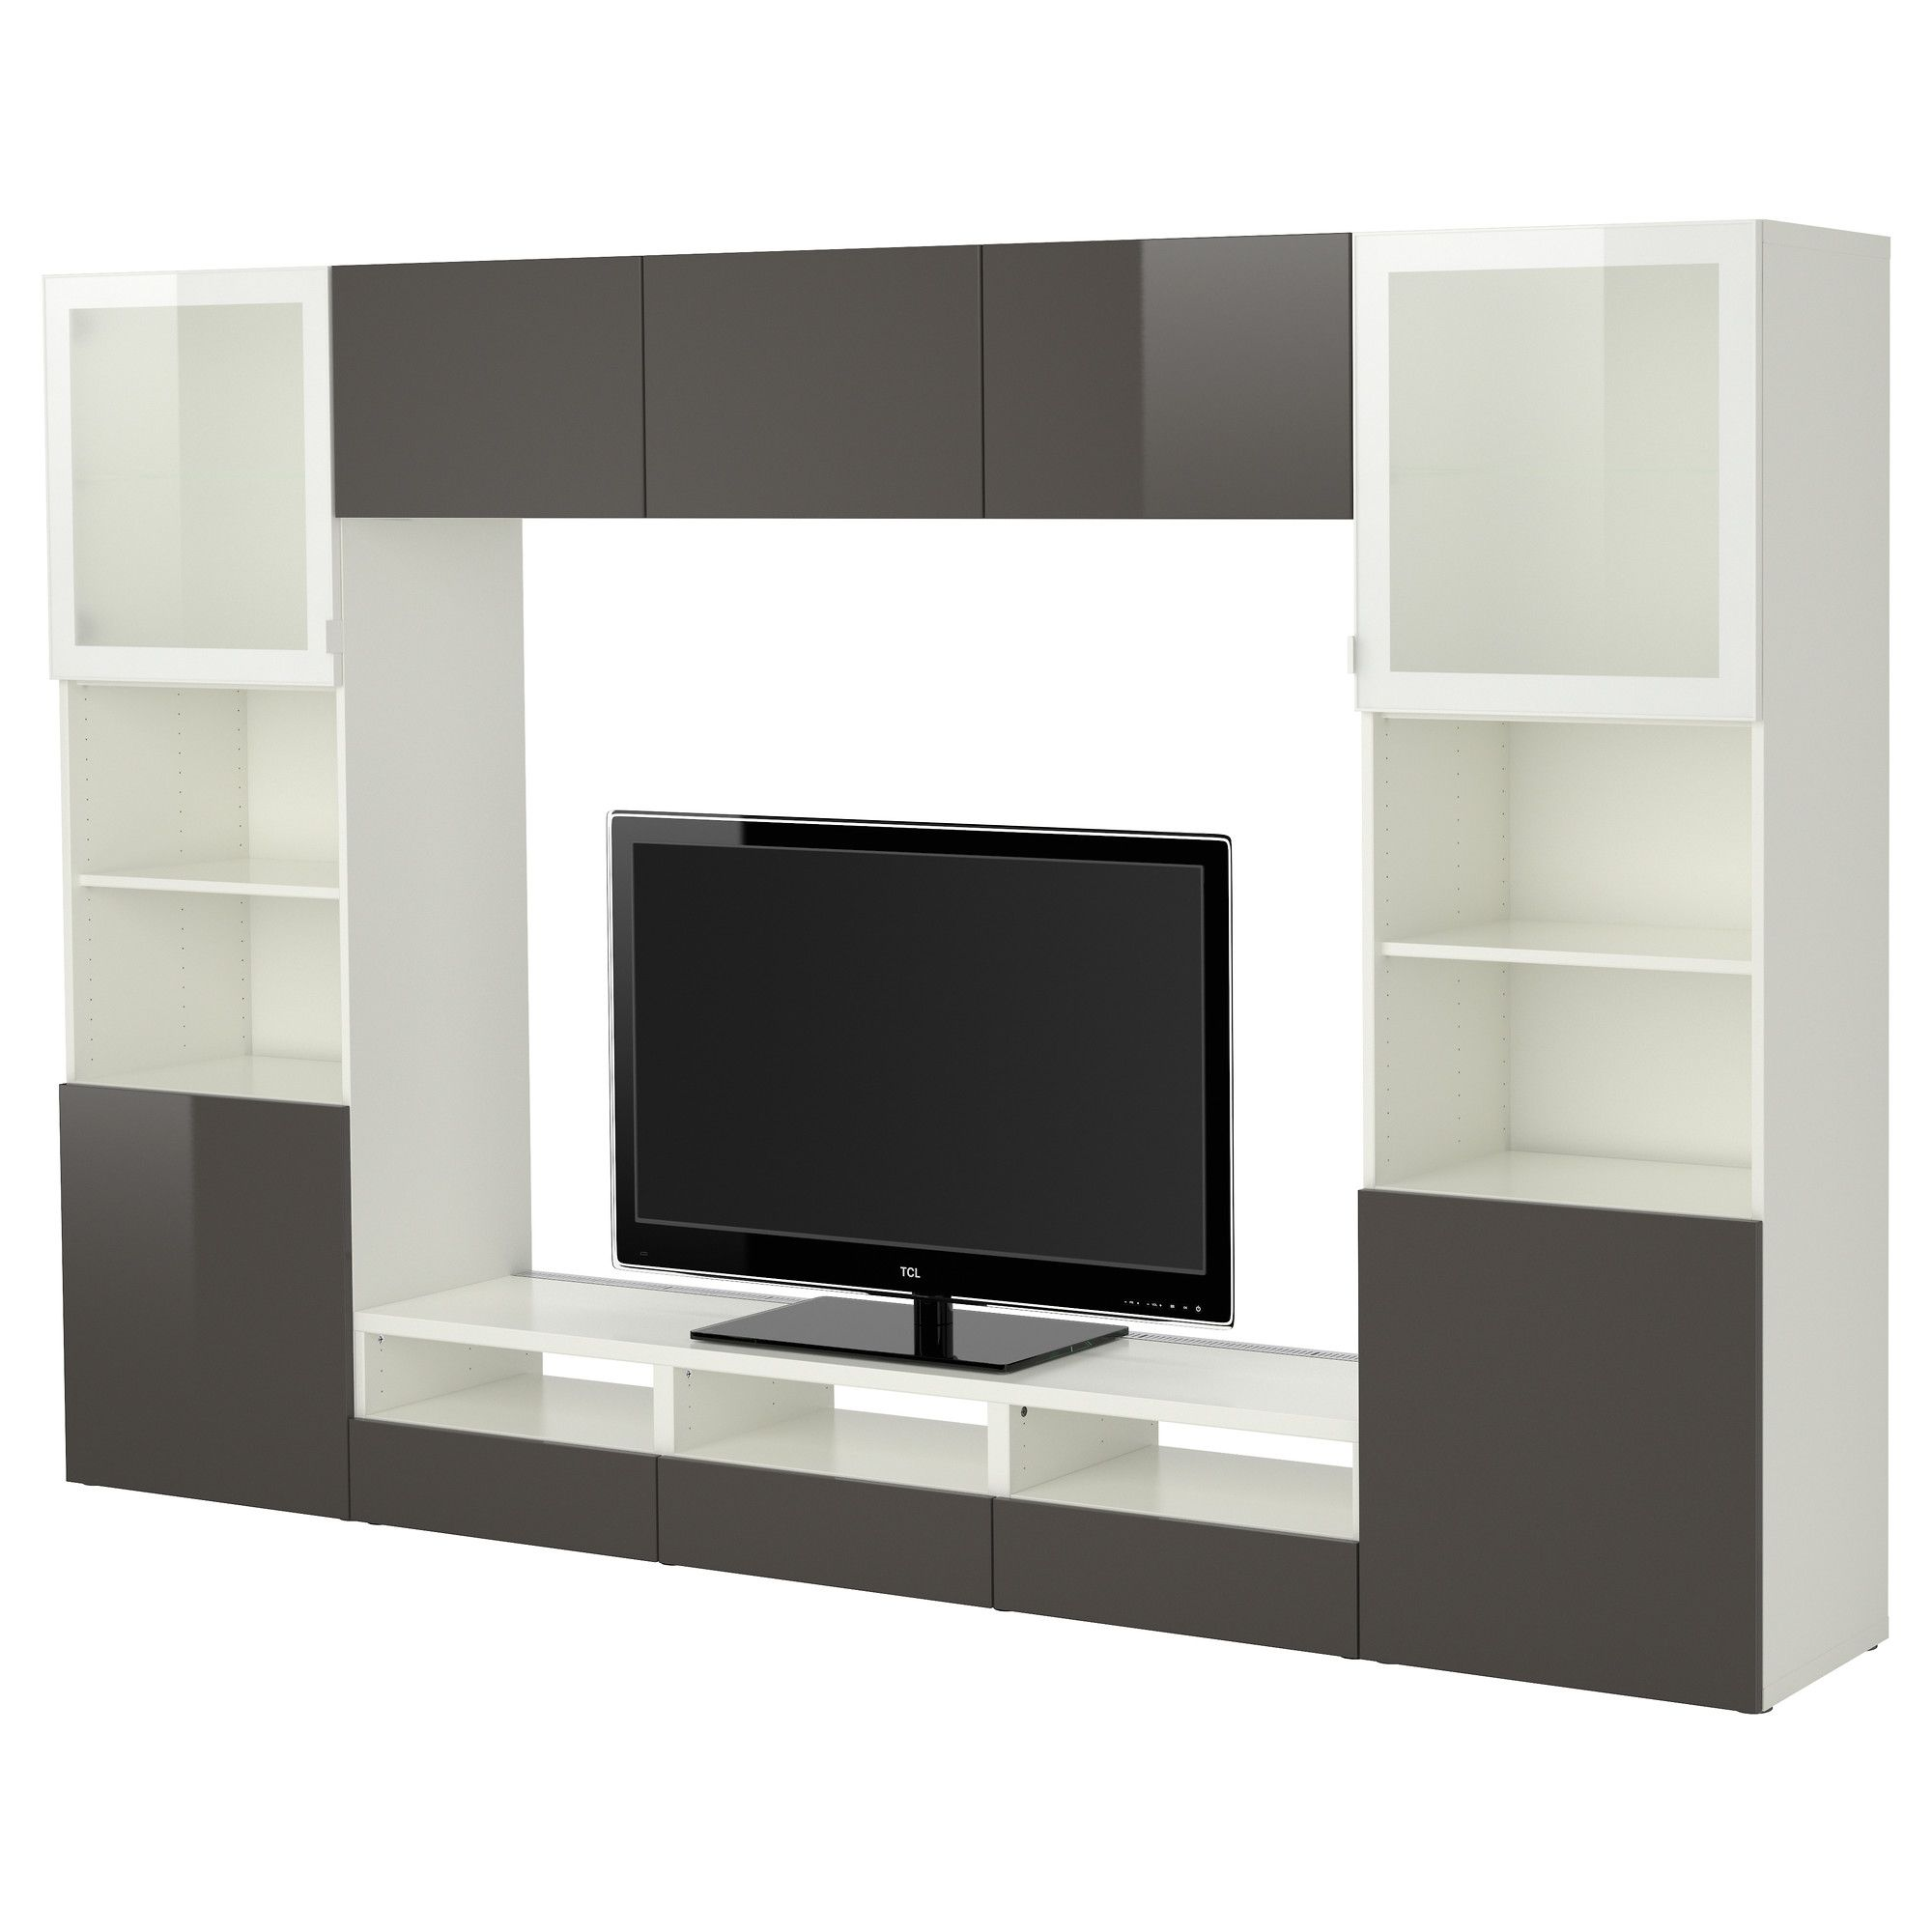 best combinaison rangt tv vitrines blanc tofta brillant gris verre givr ikea id es. Black Bedroom Furniture Sets. Home Design Ideas